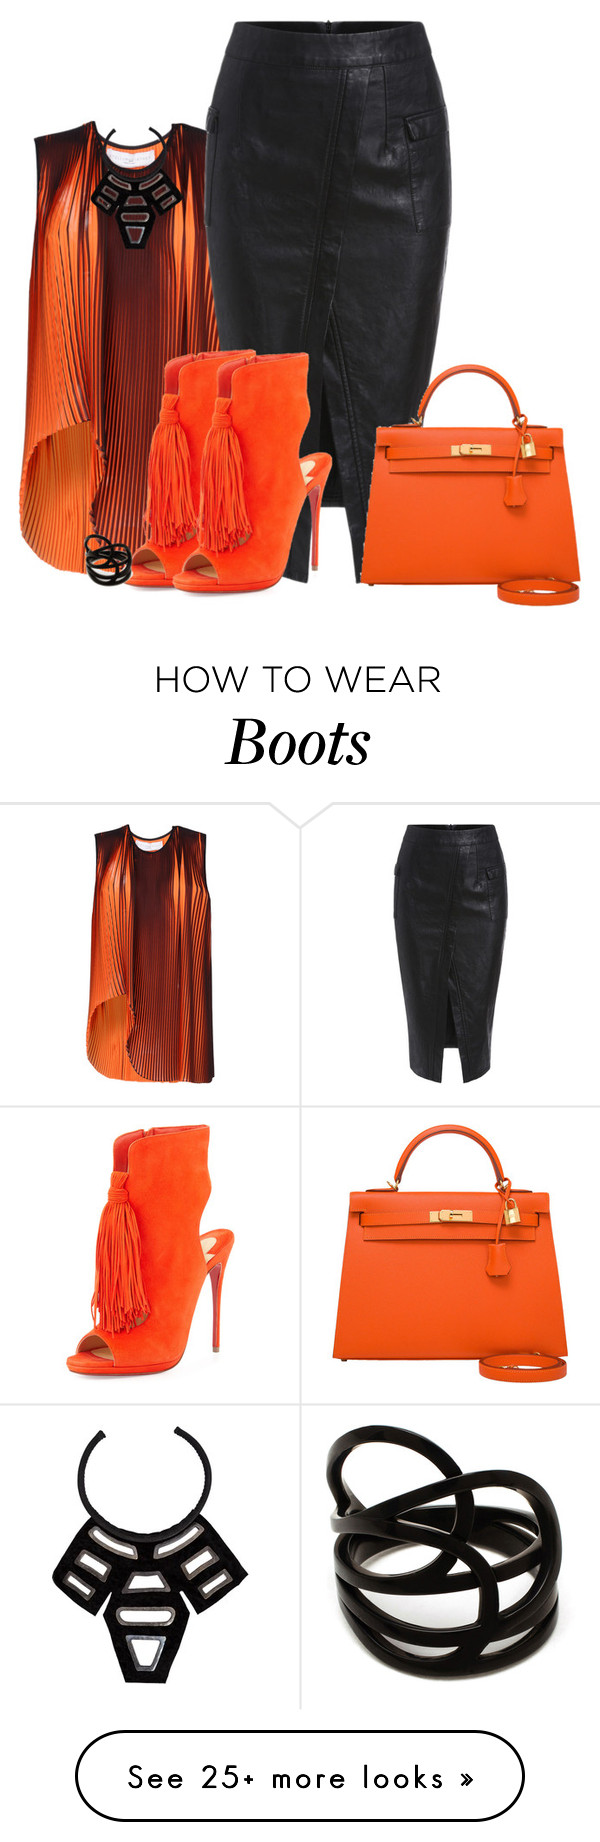 """""""Ankle Boots and a Pencil Skirt"""" by ayupsakti on Polyvore featuring STELLA McCARTNEY, Christian Louboutin, URBAN ZEN, Repossi and Hermès"""